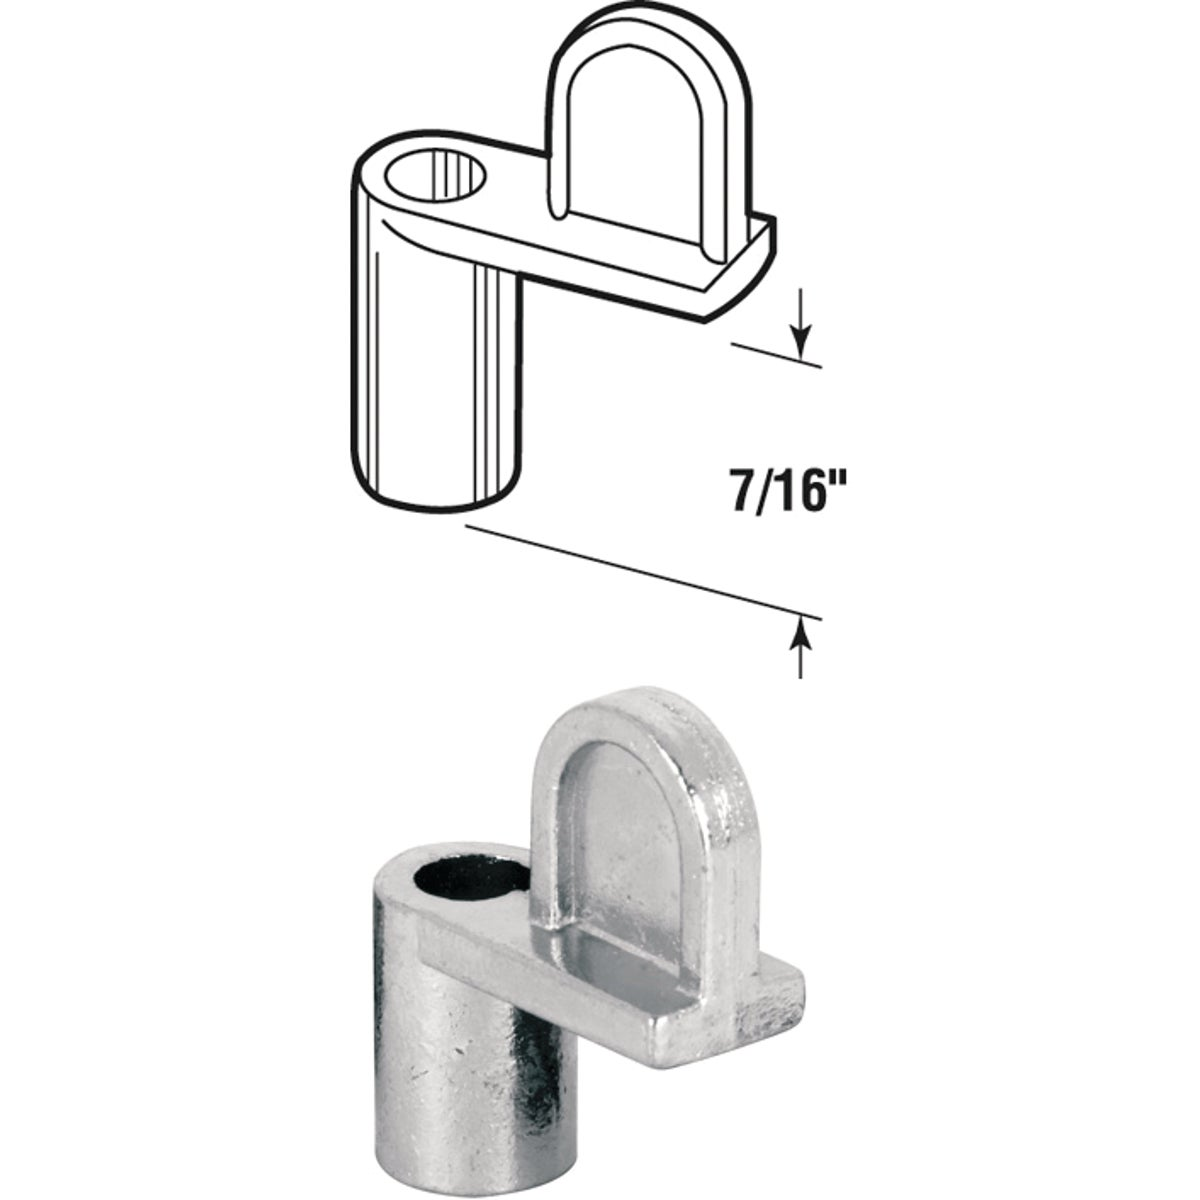 WINDOW SCREEN CLIPS - 182930-7 by Prime Line Products